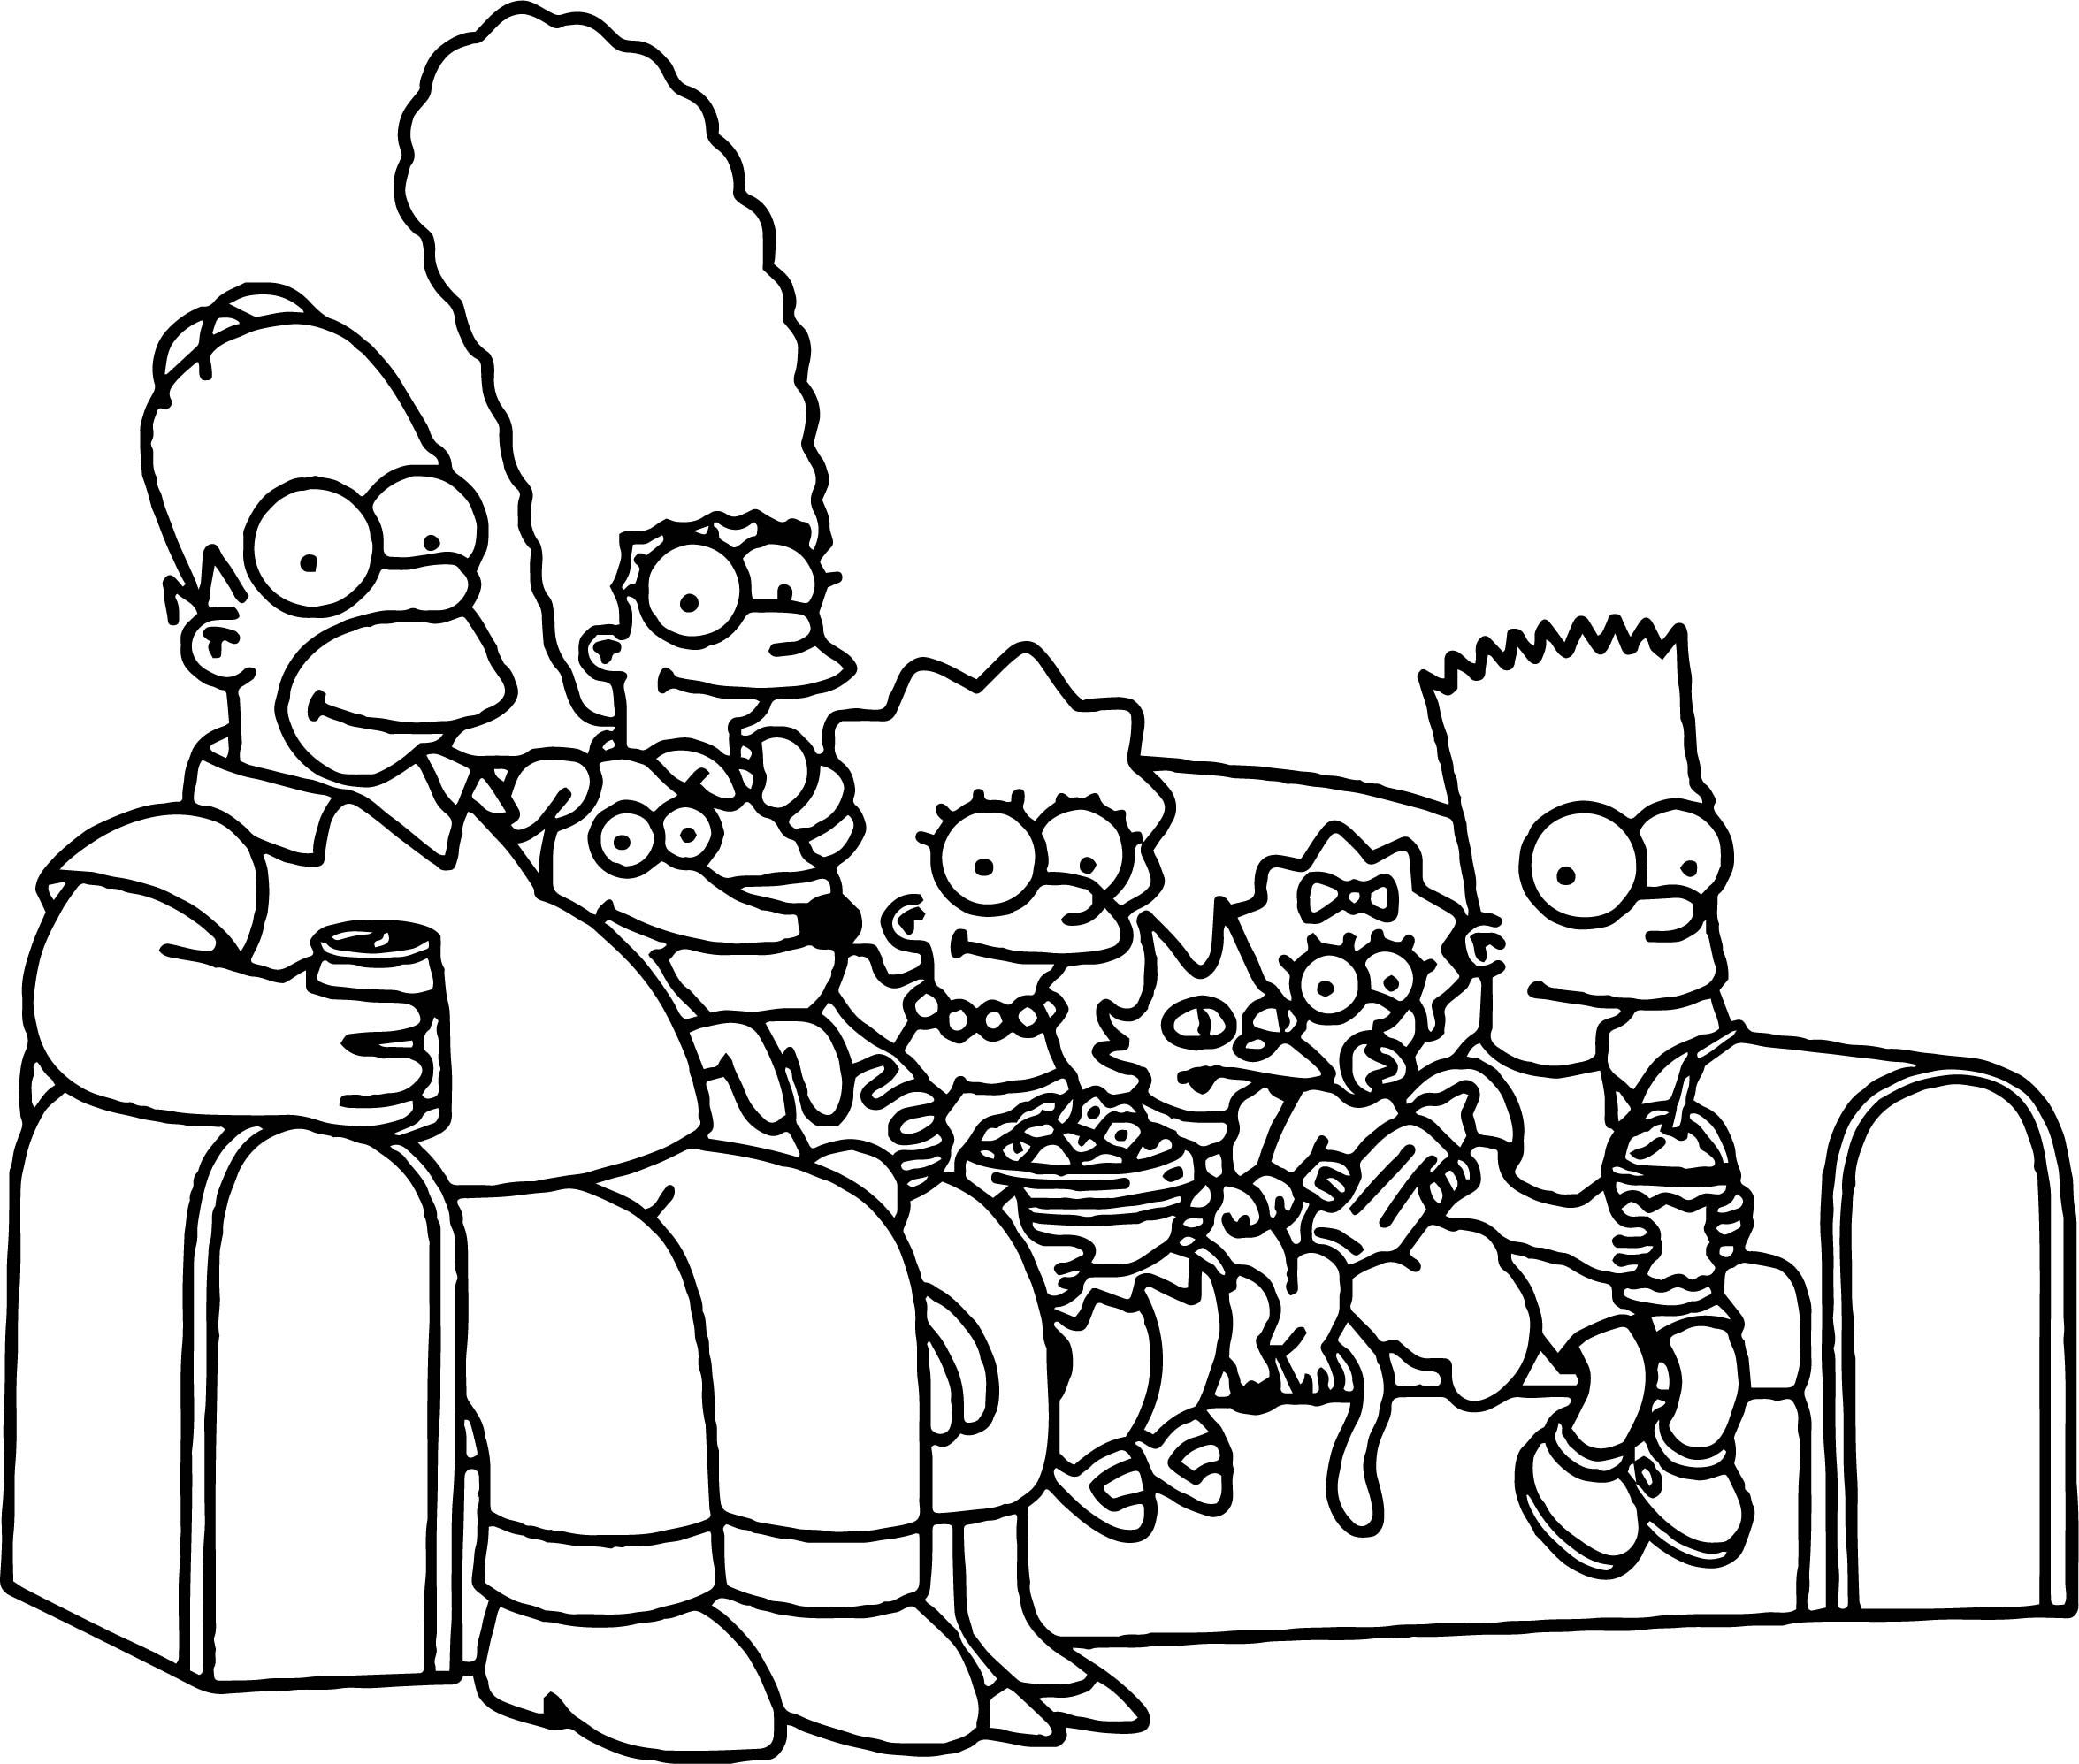 Awesome Simpsons Couch Coloring Page Simpsons Drawings Simpsons Tattoo Family Coloring Pages